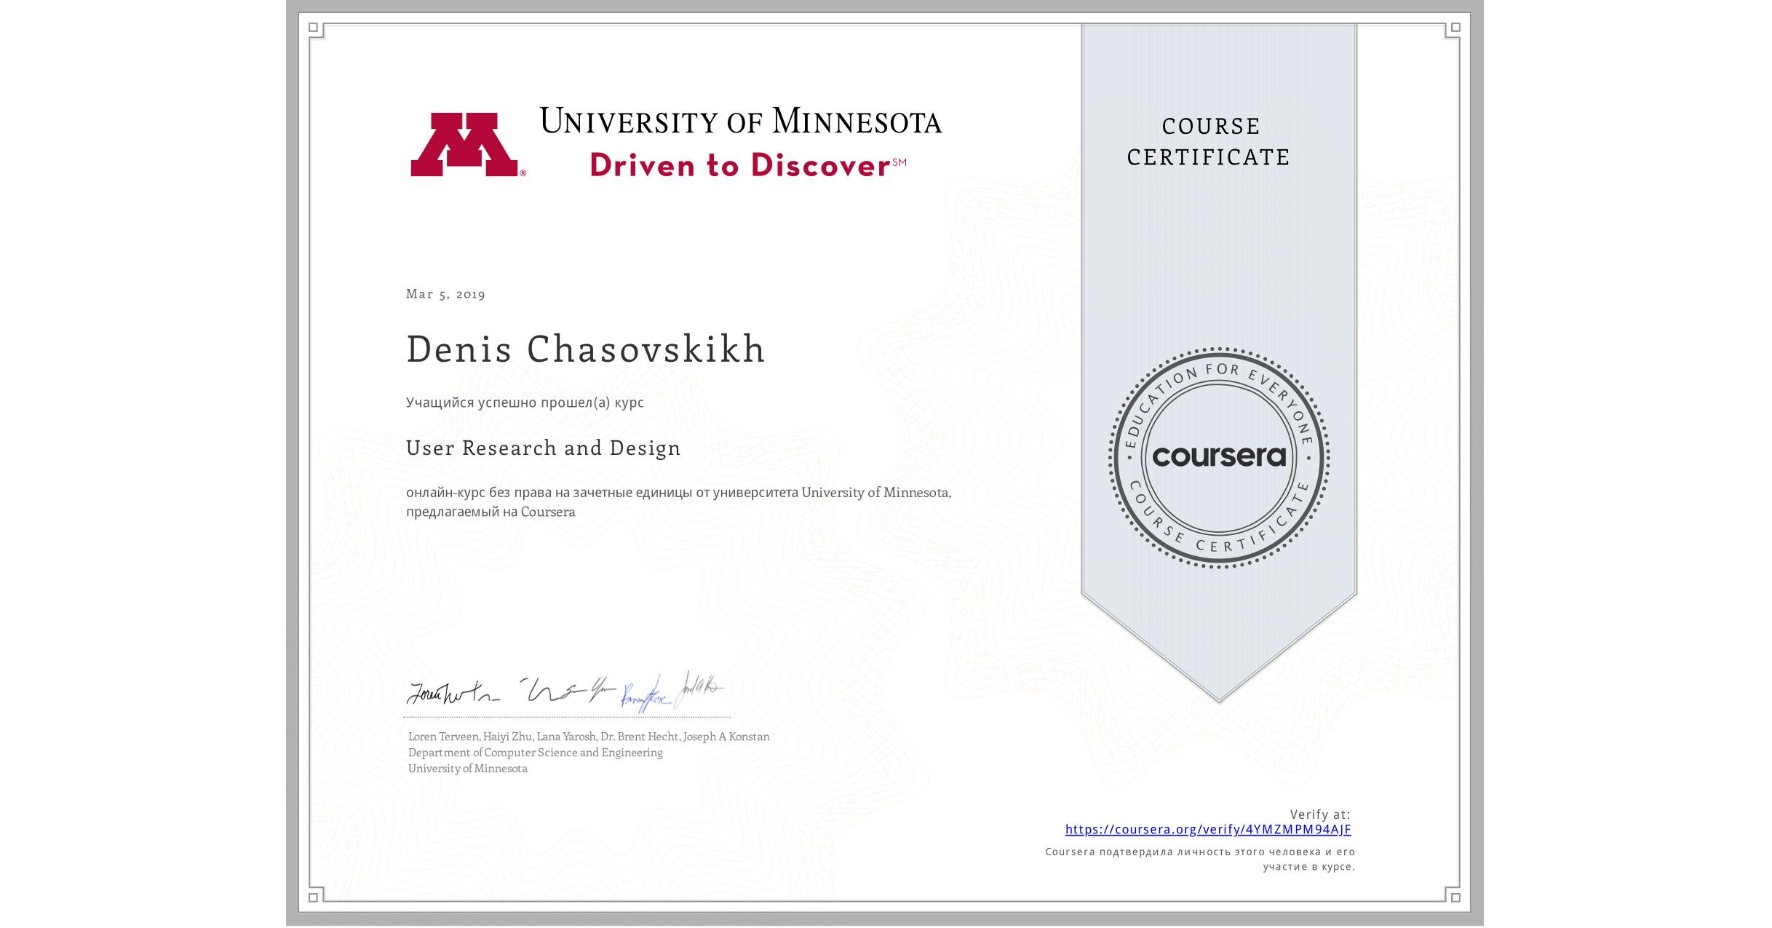 View certificate for Denis Chasovskikh, User Research and Design, an online non-credit course authorized by University of Minnesota and offered through Coursera